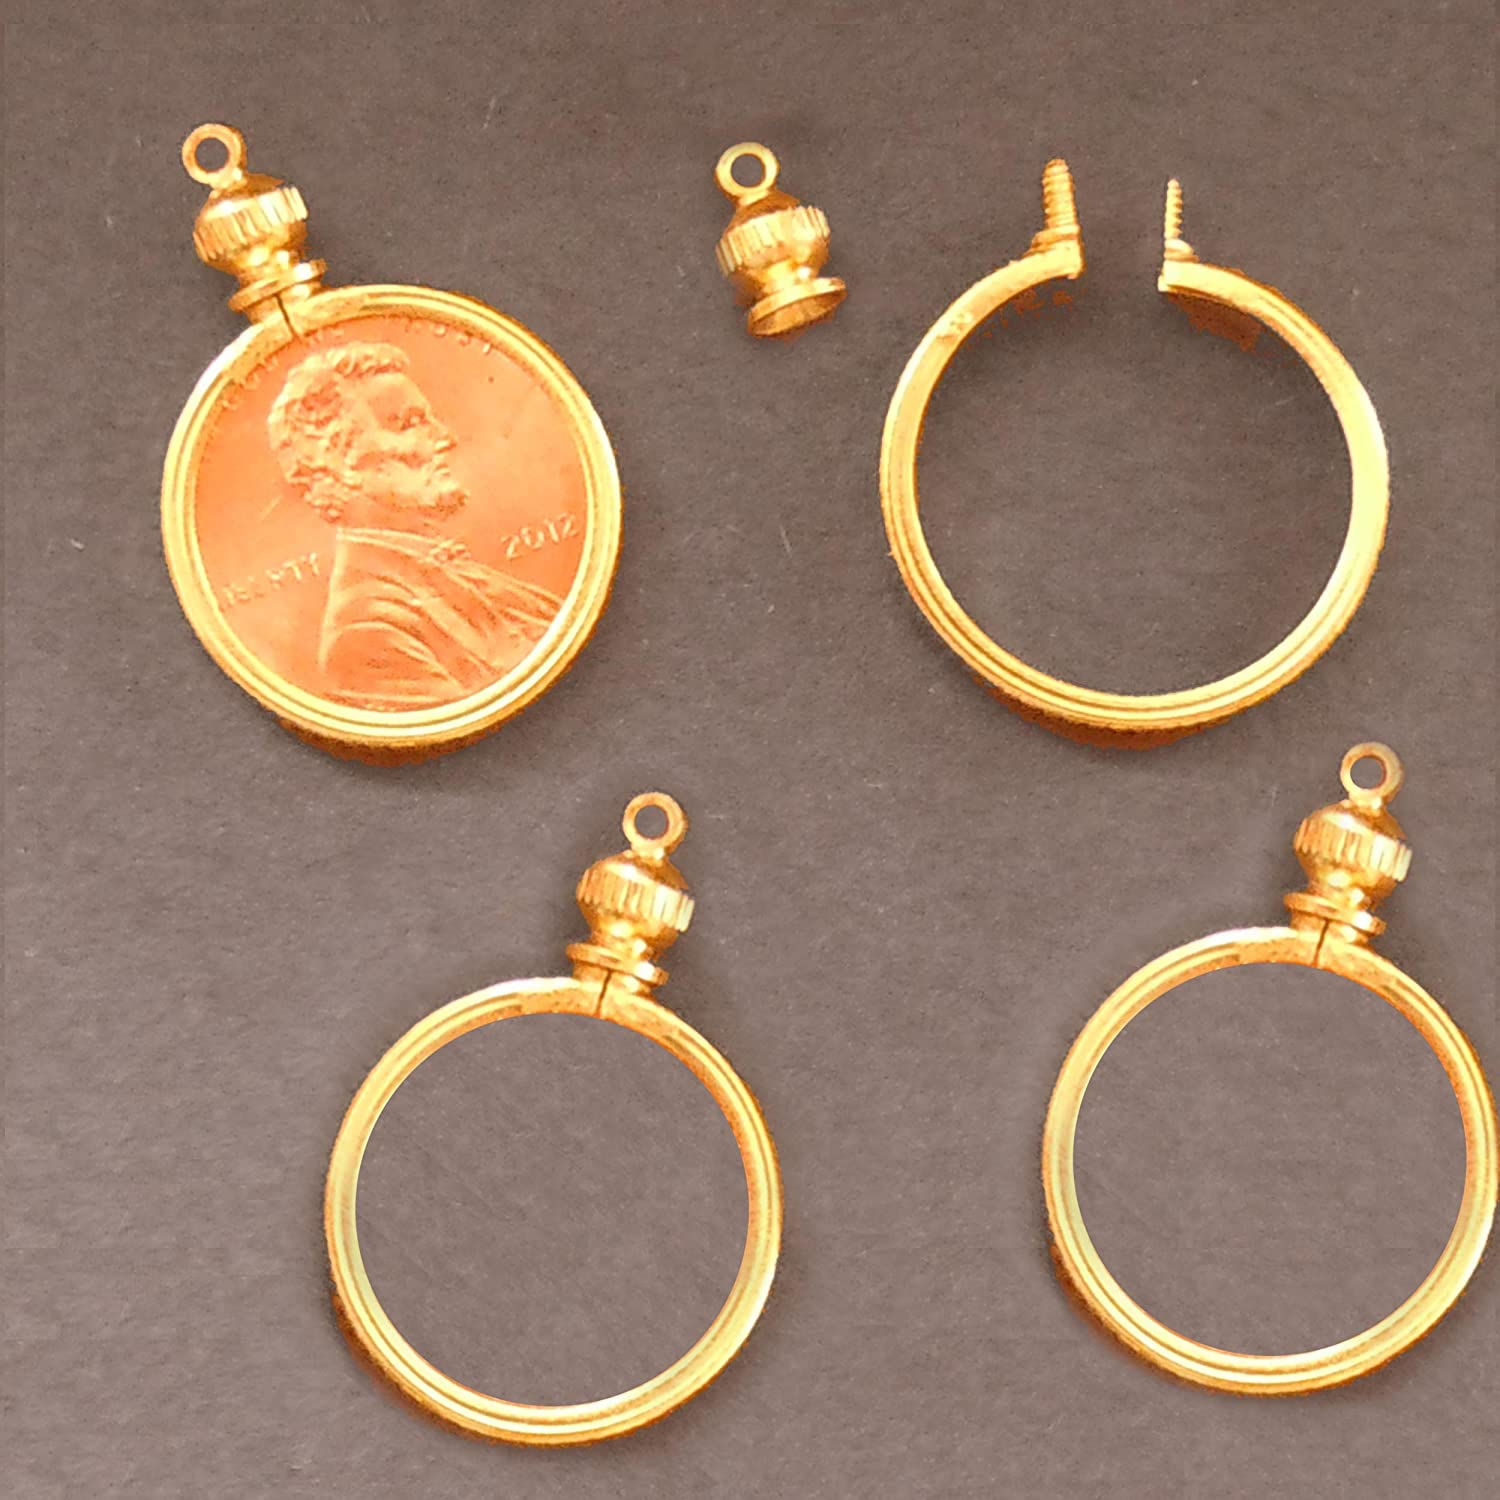 Amazon 1 cent usa penny coin holder bezel gold tone for amazon 1 cent usa penny coin holder bezel gold tone for charm necklace pendant display pack of 4 toys games aloadofball